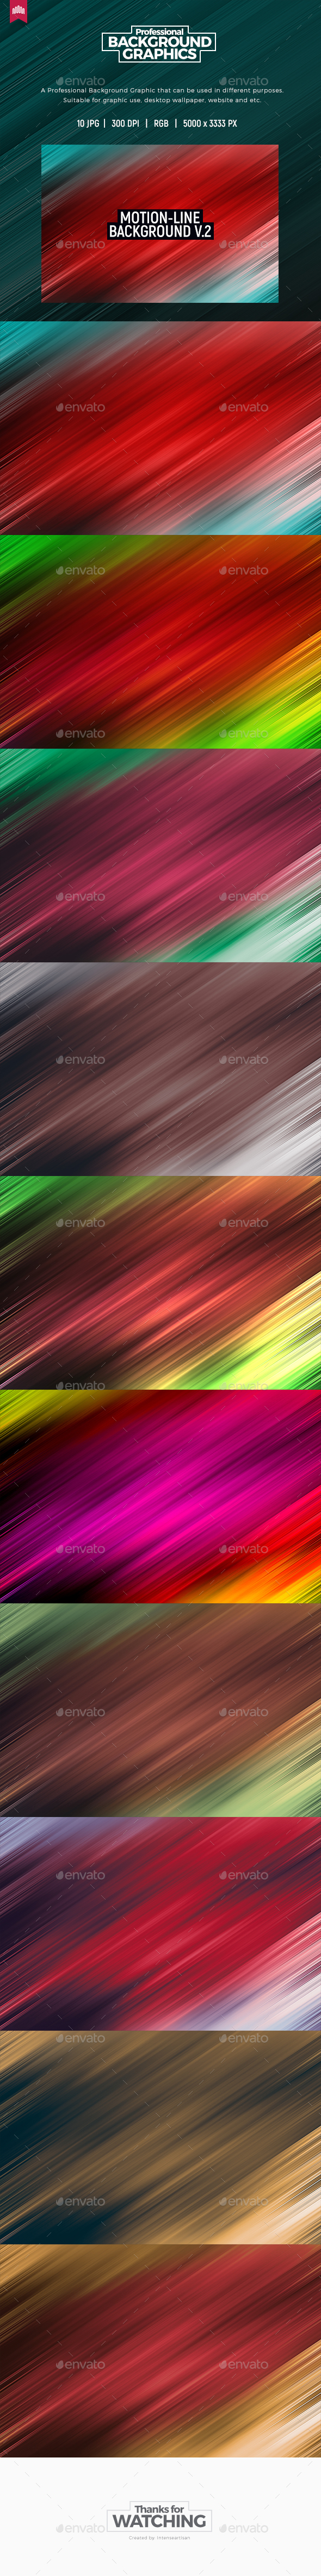 Motion Line - Background V.2 - Abstract Backgrounds